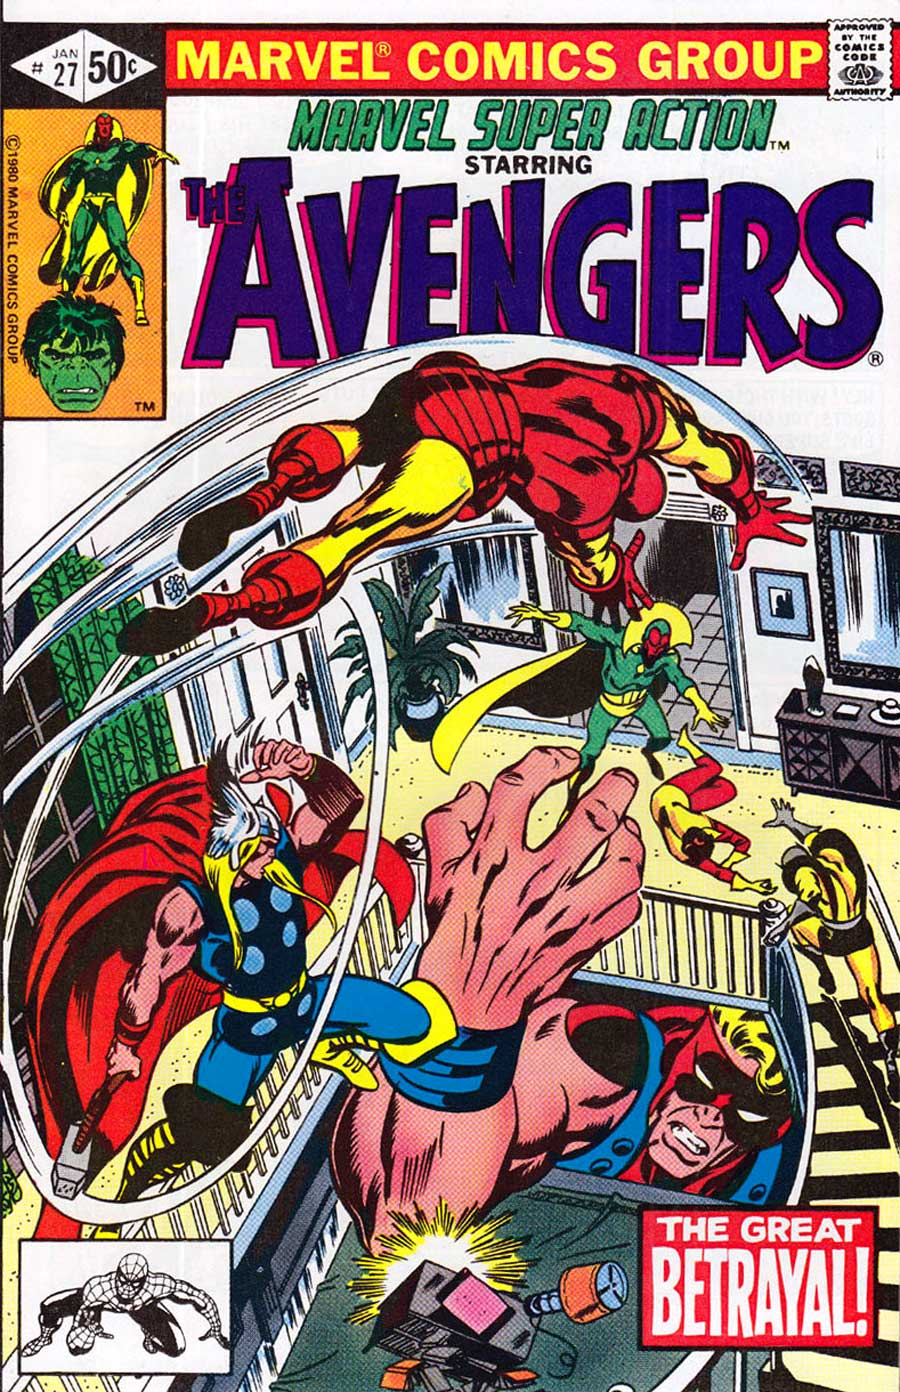 MARVEL SUPER-ACTION: THE AVENGERS # 30 : NM- : APR 1981 : (MARVEL COMICS).